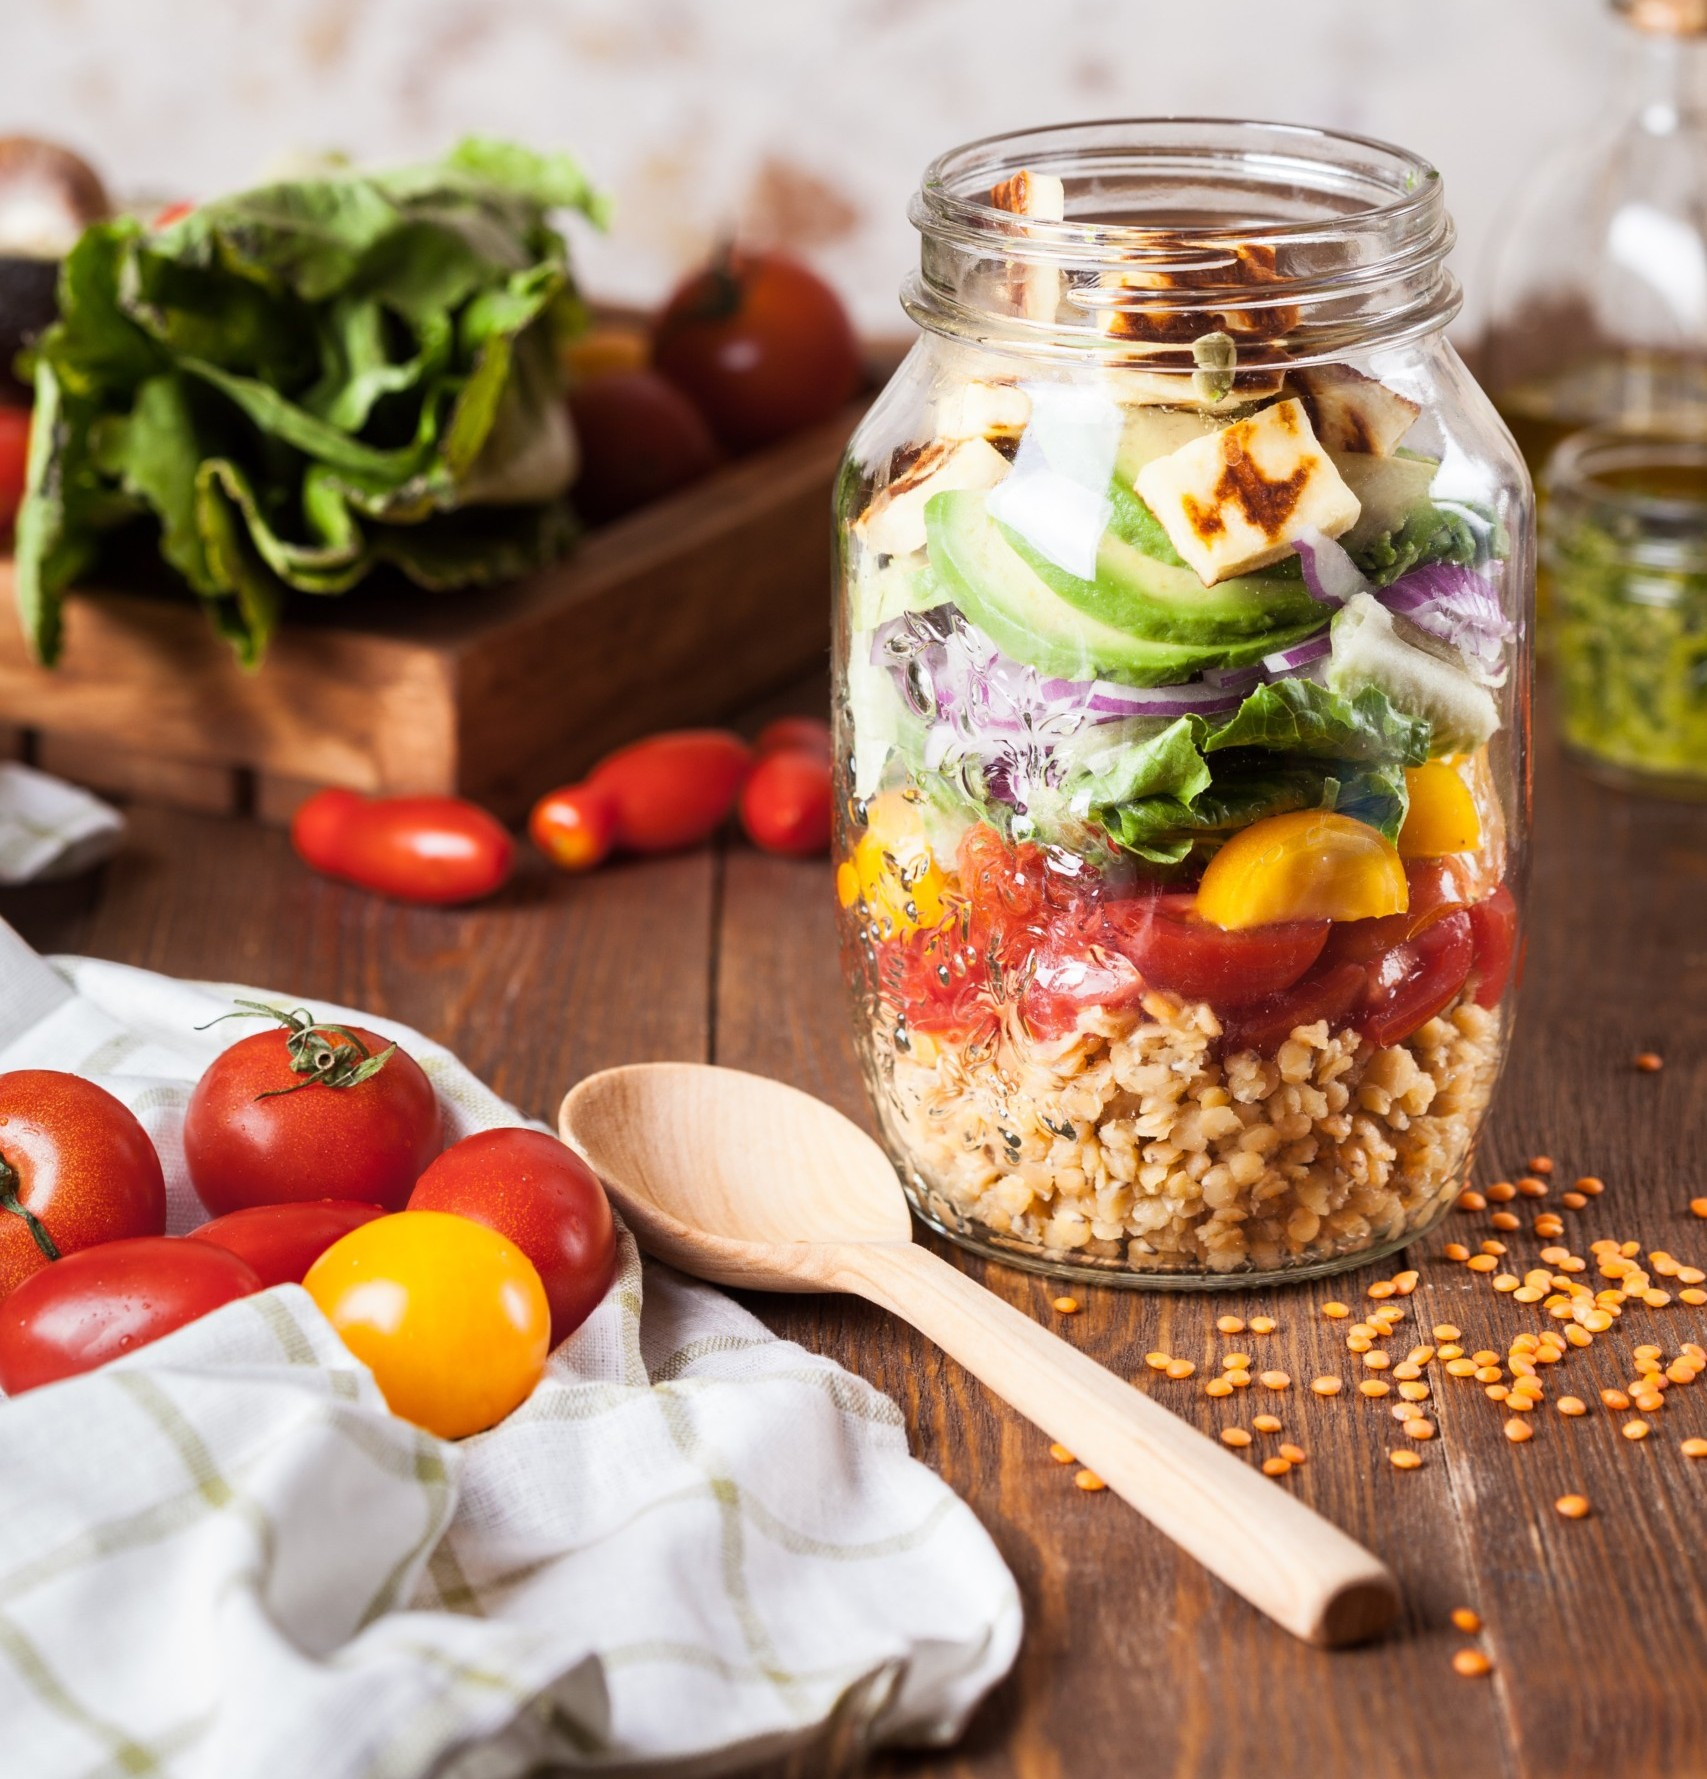 Vegan-Friendly Diets To Help Manage Your Special Needs - Veg World Magazine